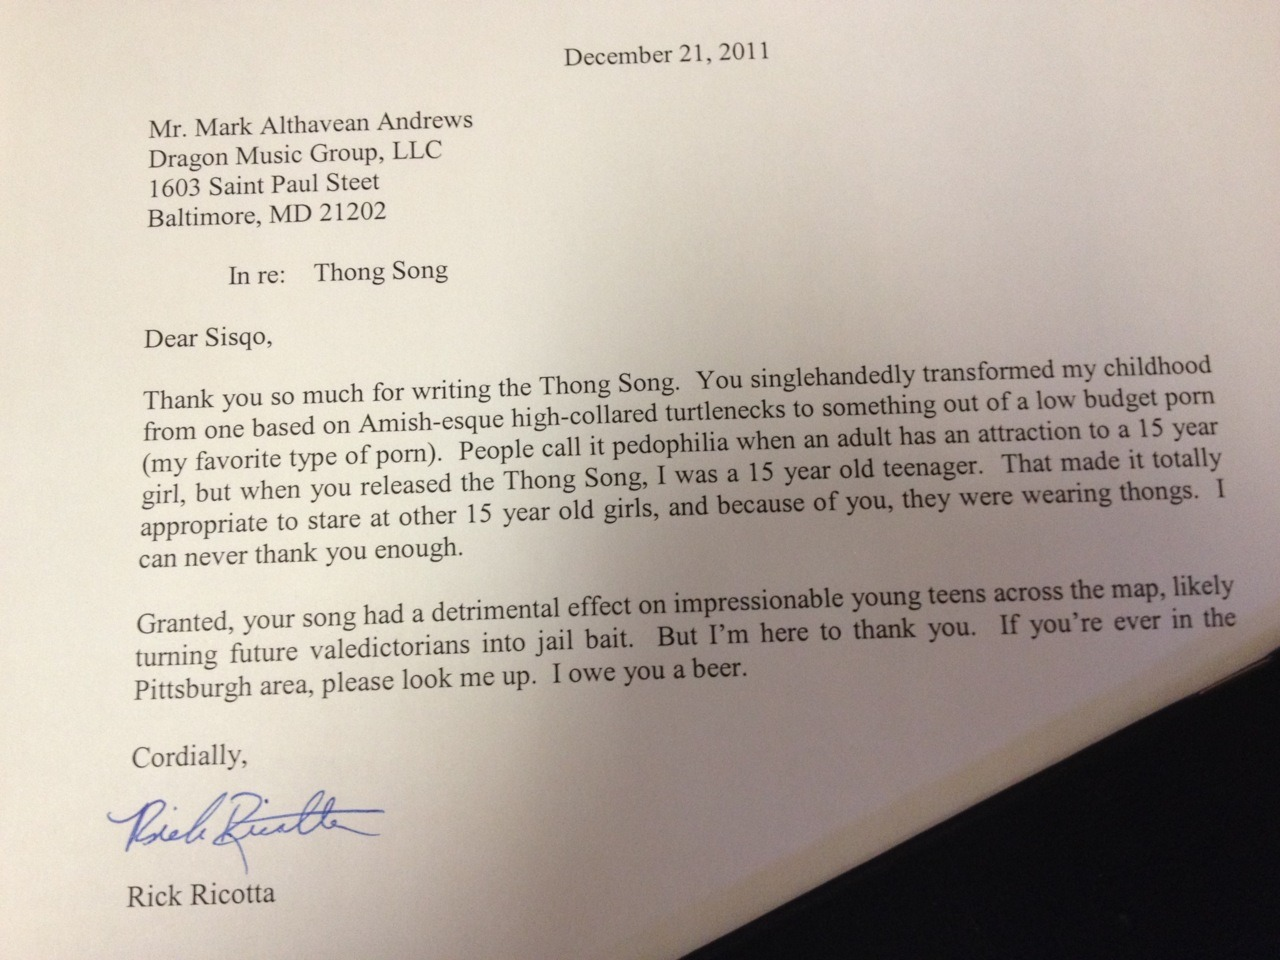 Guys… GUYS! My boss just printed an open letter to Sisqo, thanking him for making Thong Song. This one is a gem. effin guy is nuts.